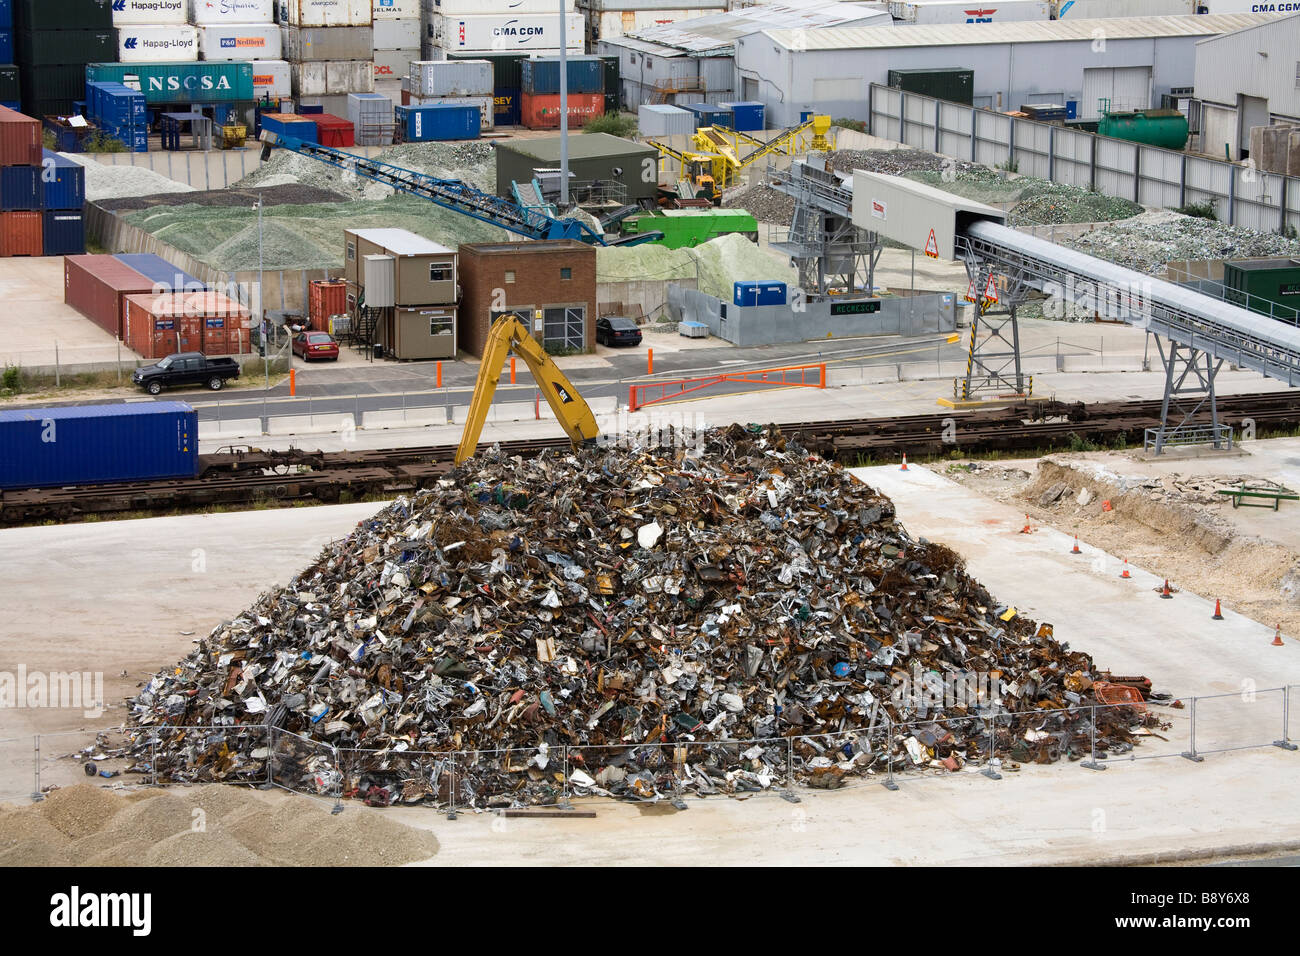 Heap of metal scrap at the commercial dock, Southampton, Hampshire, England - Stock Image